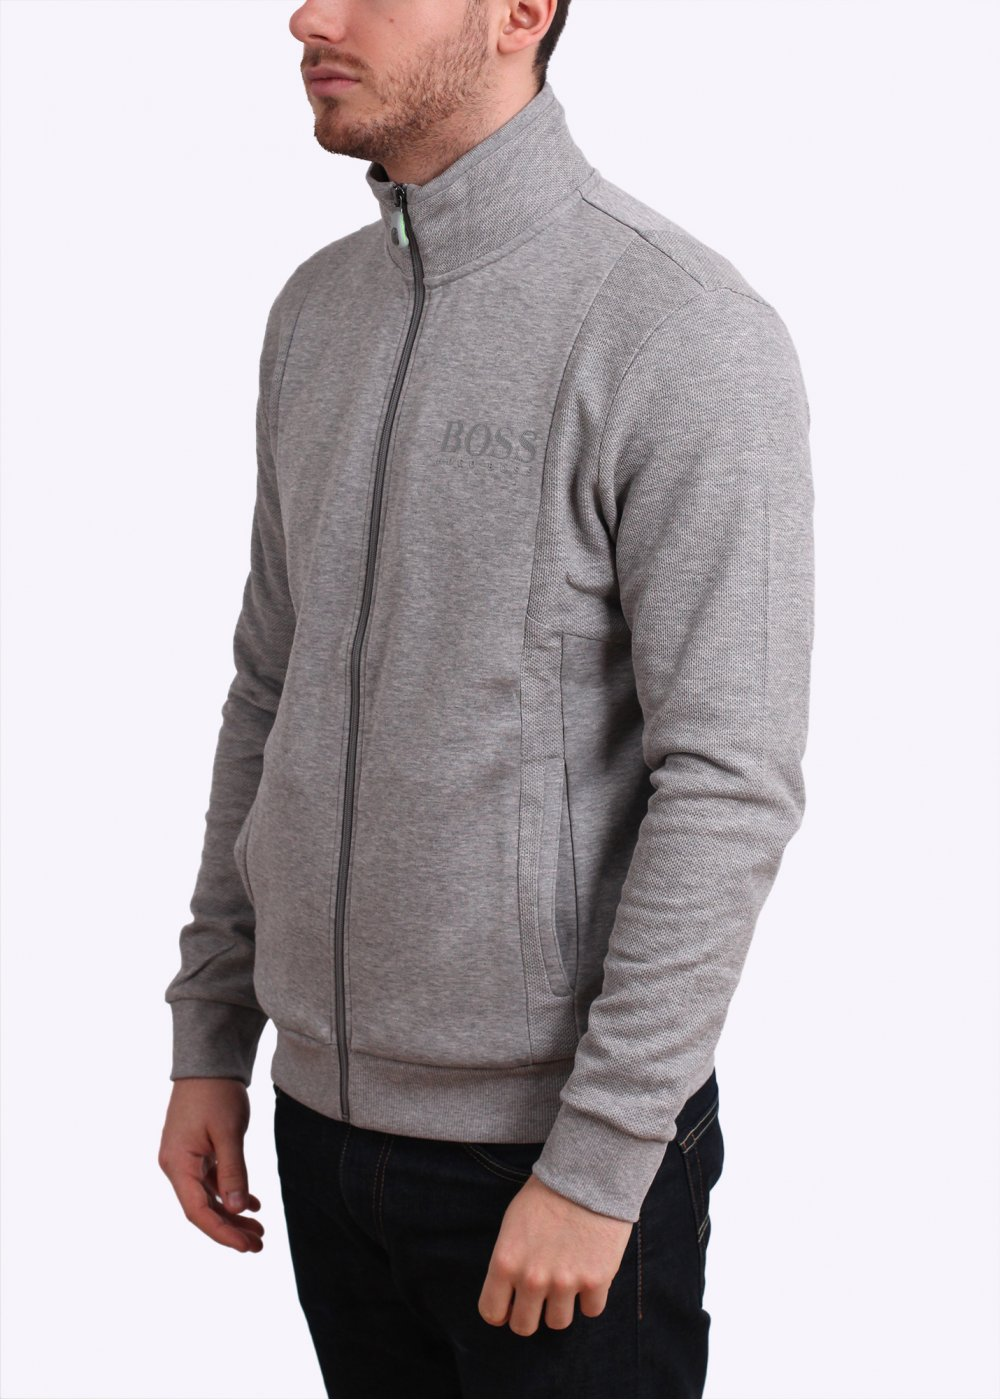 Hugo Boss Skaz Jacket Light Grey